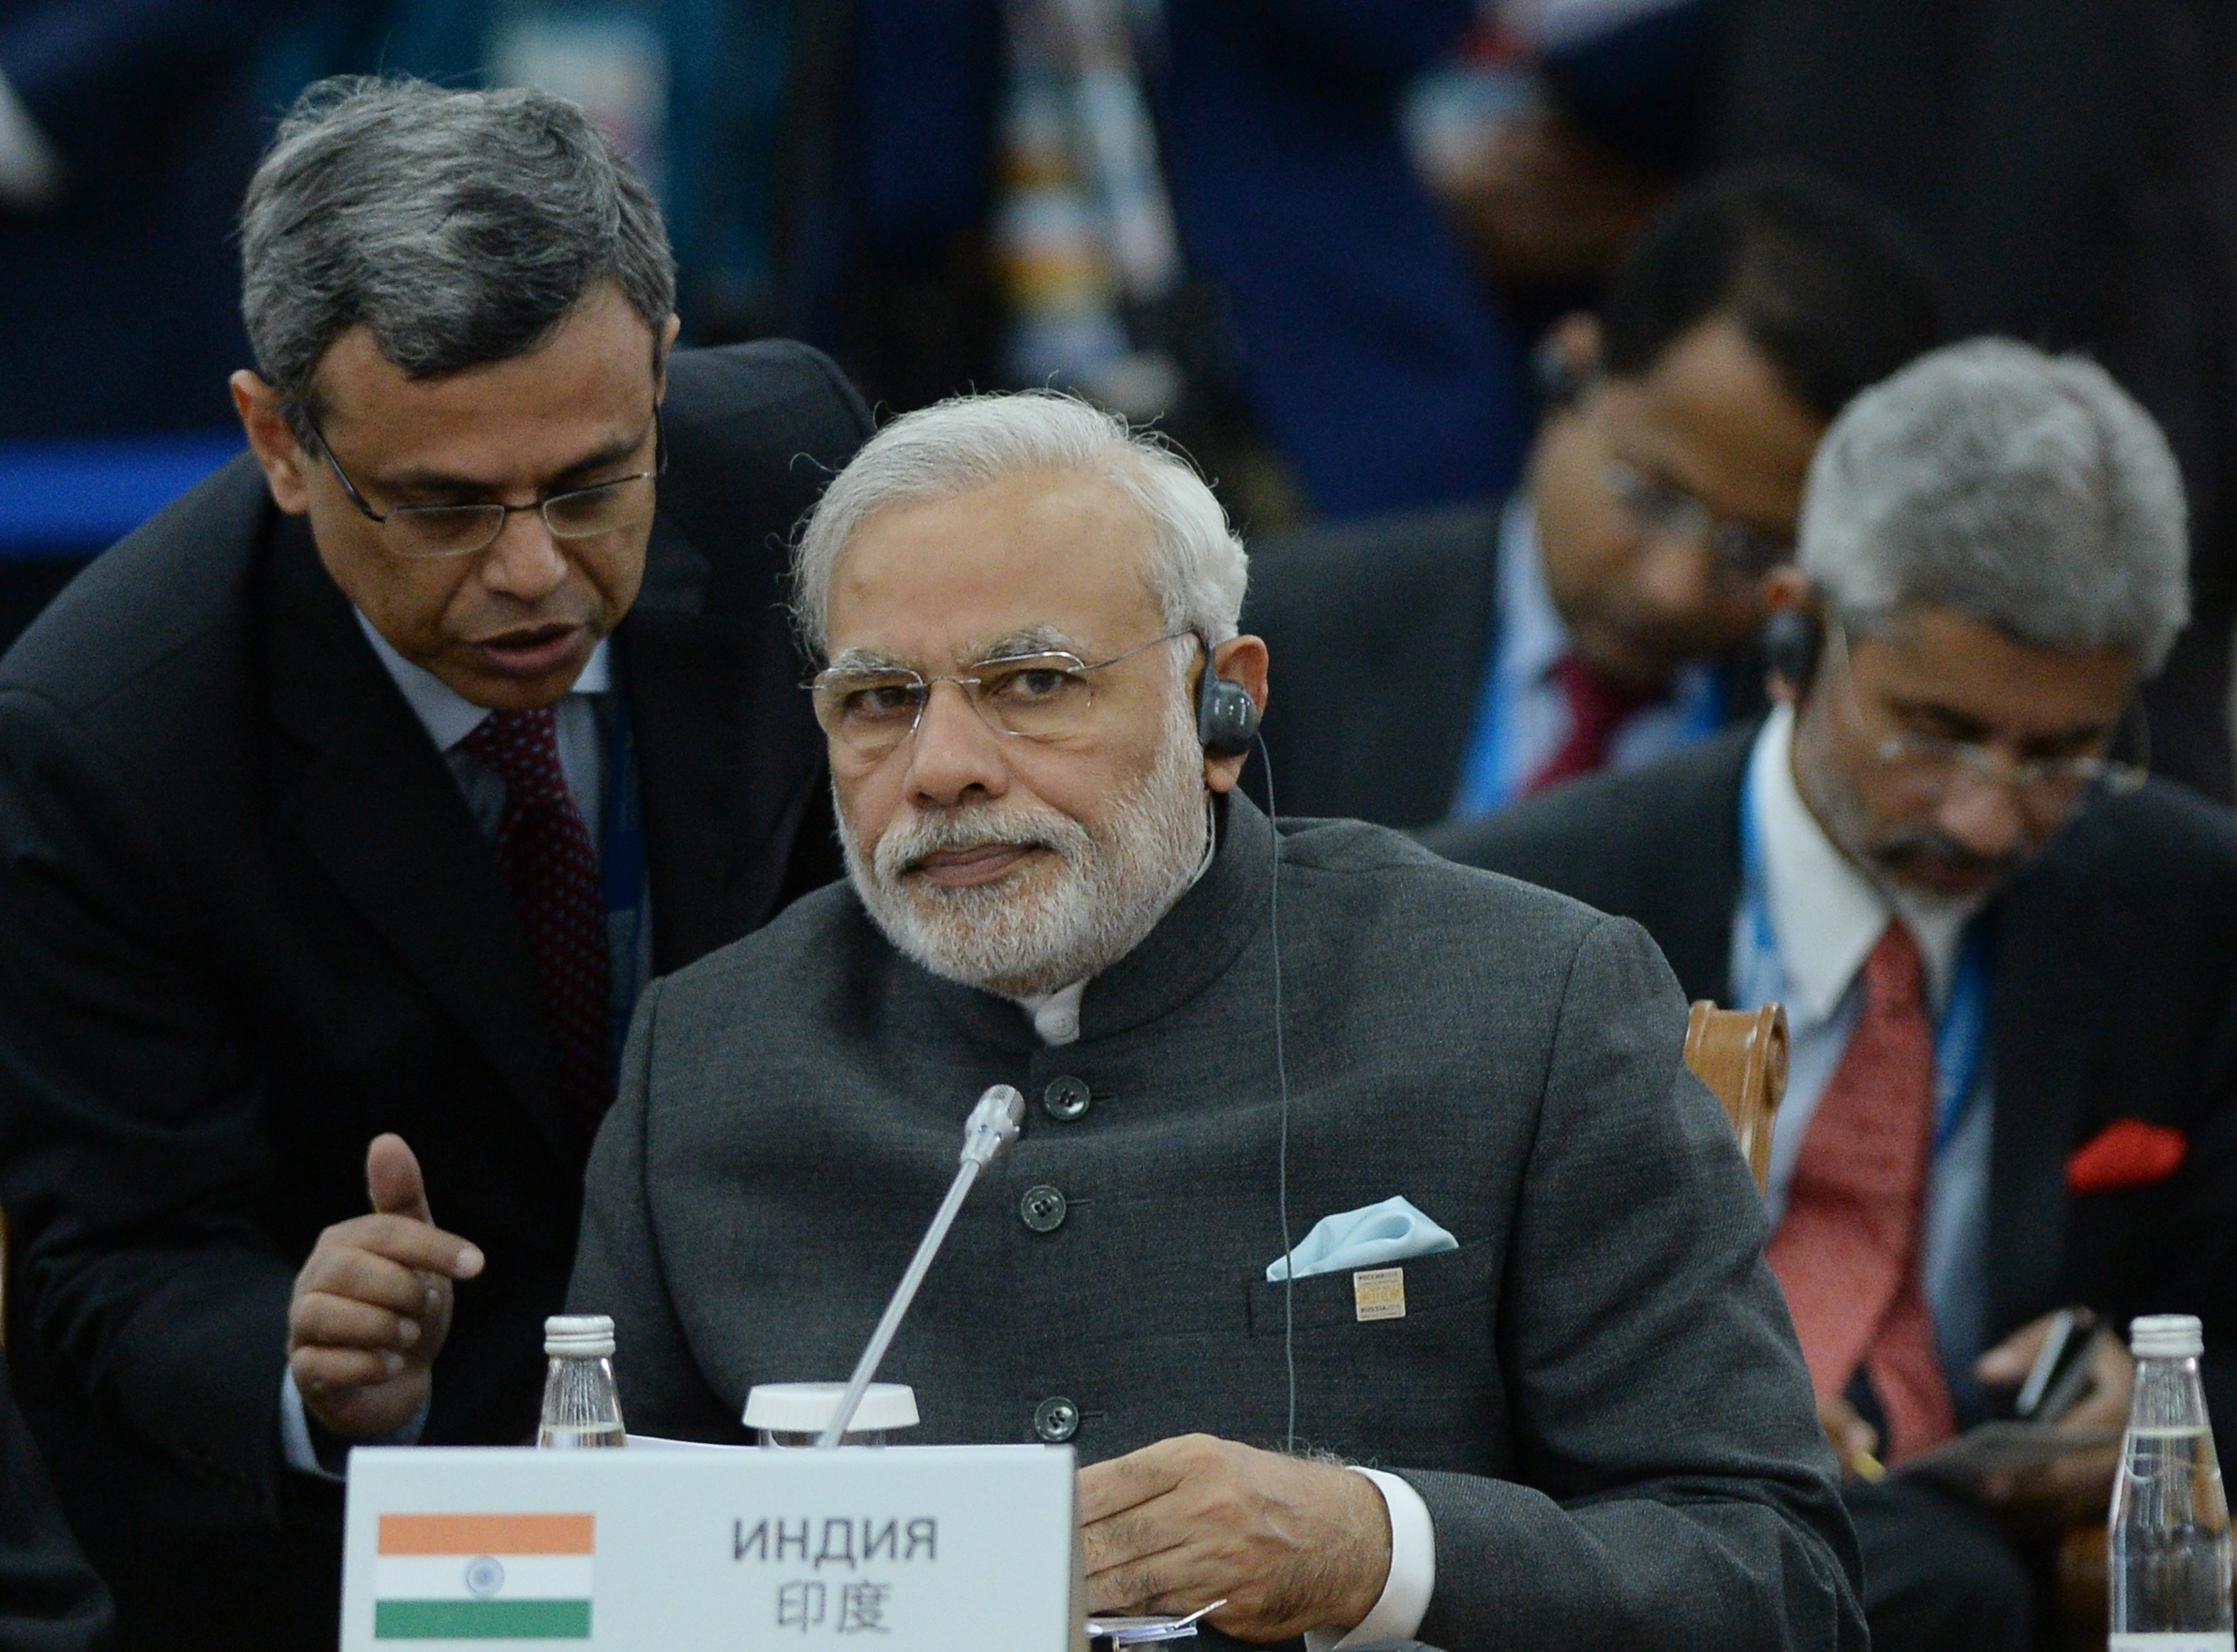 Narendra Modi at SCO summit in Ufa in 2015.